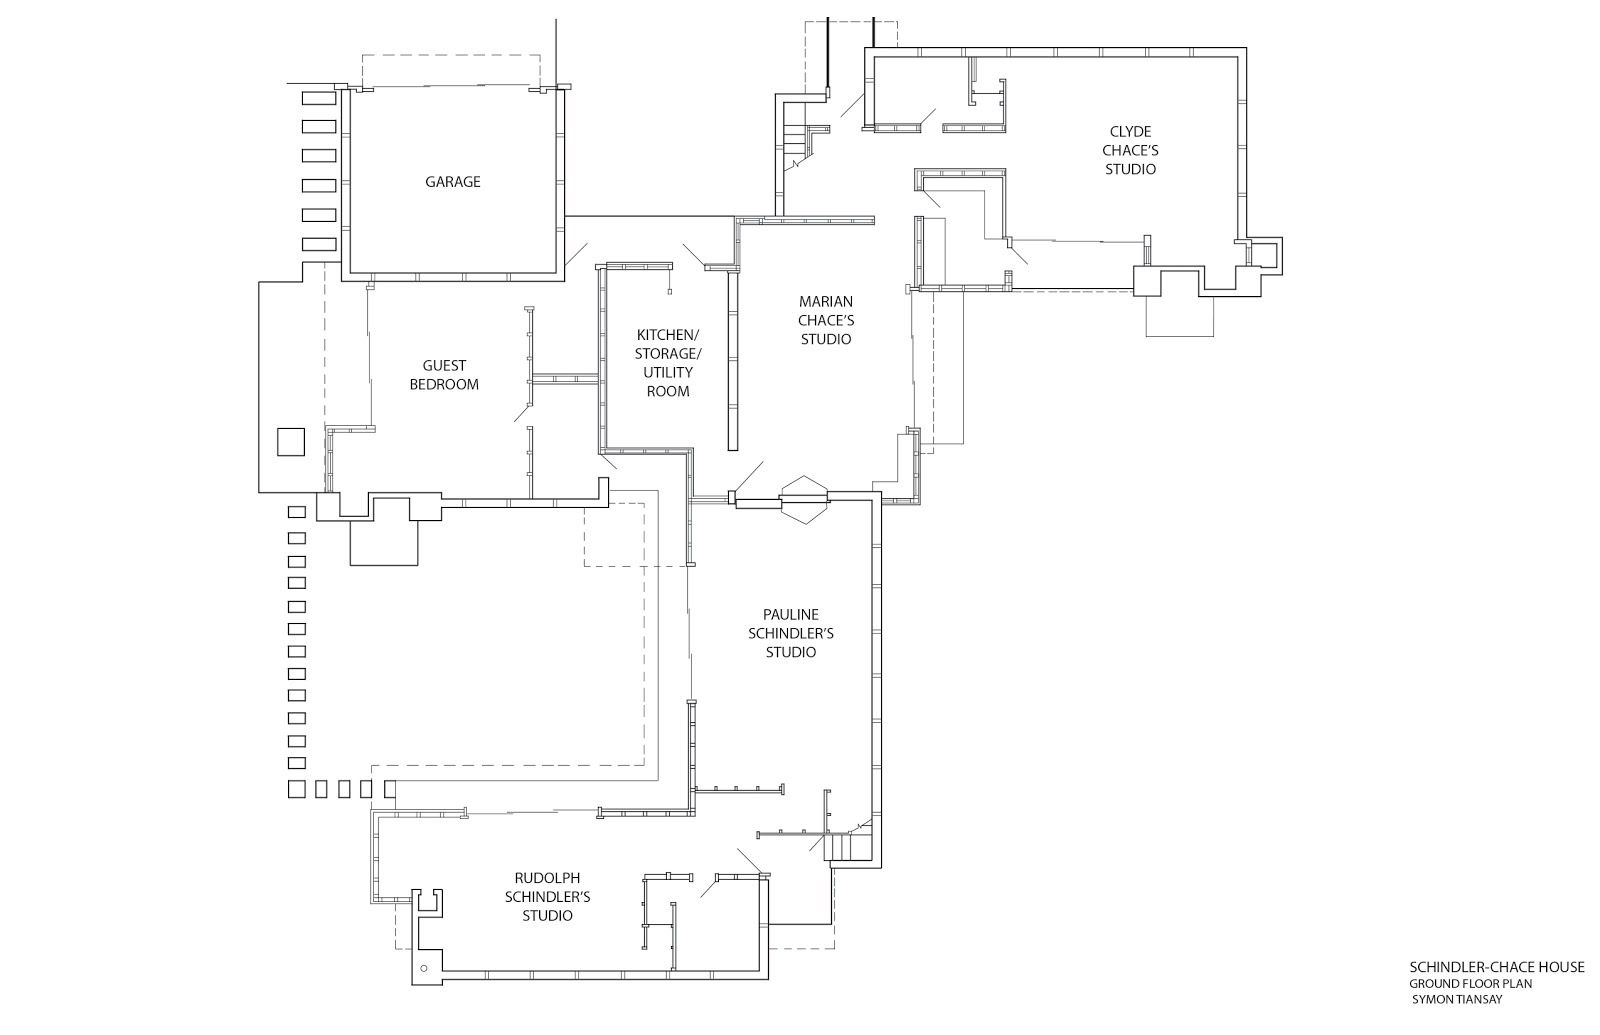 Schindler Chace House Schindler House In Plan Section